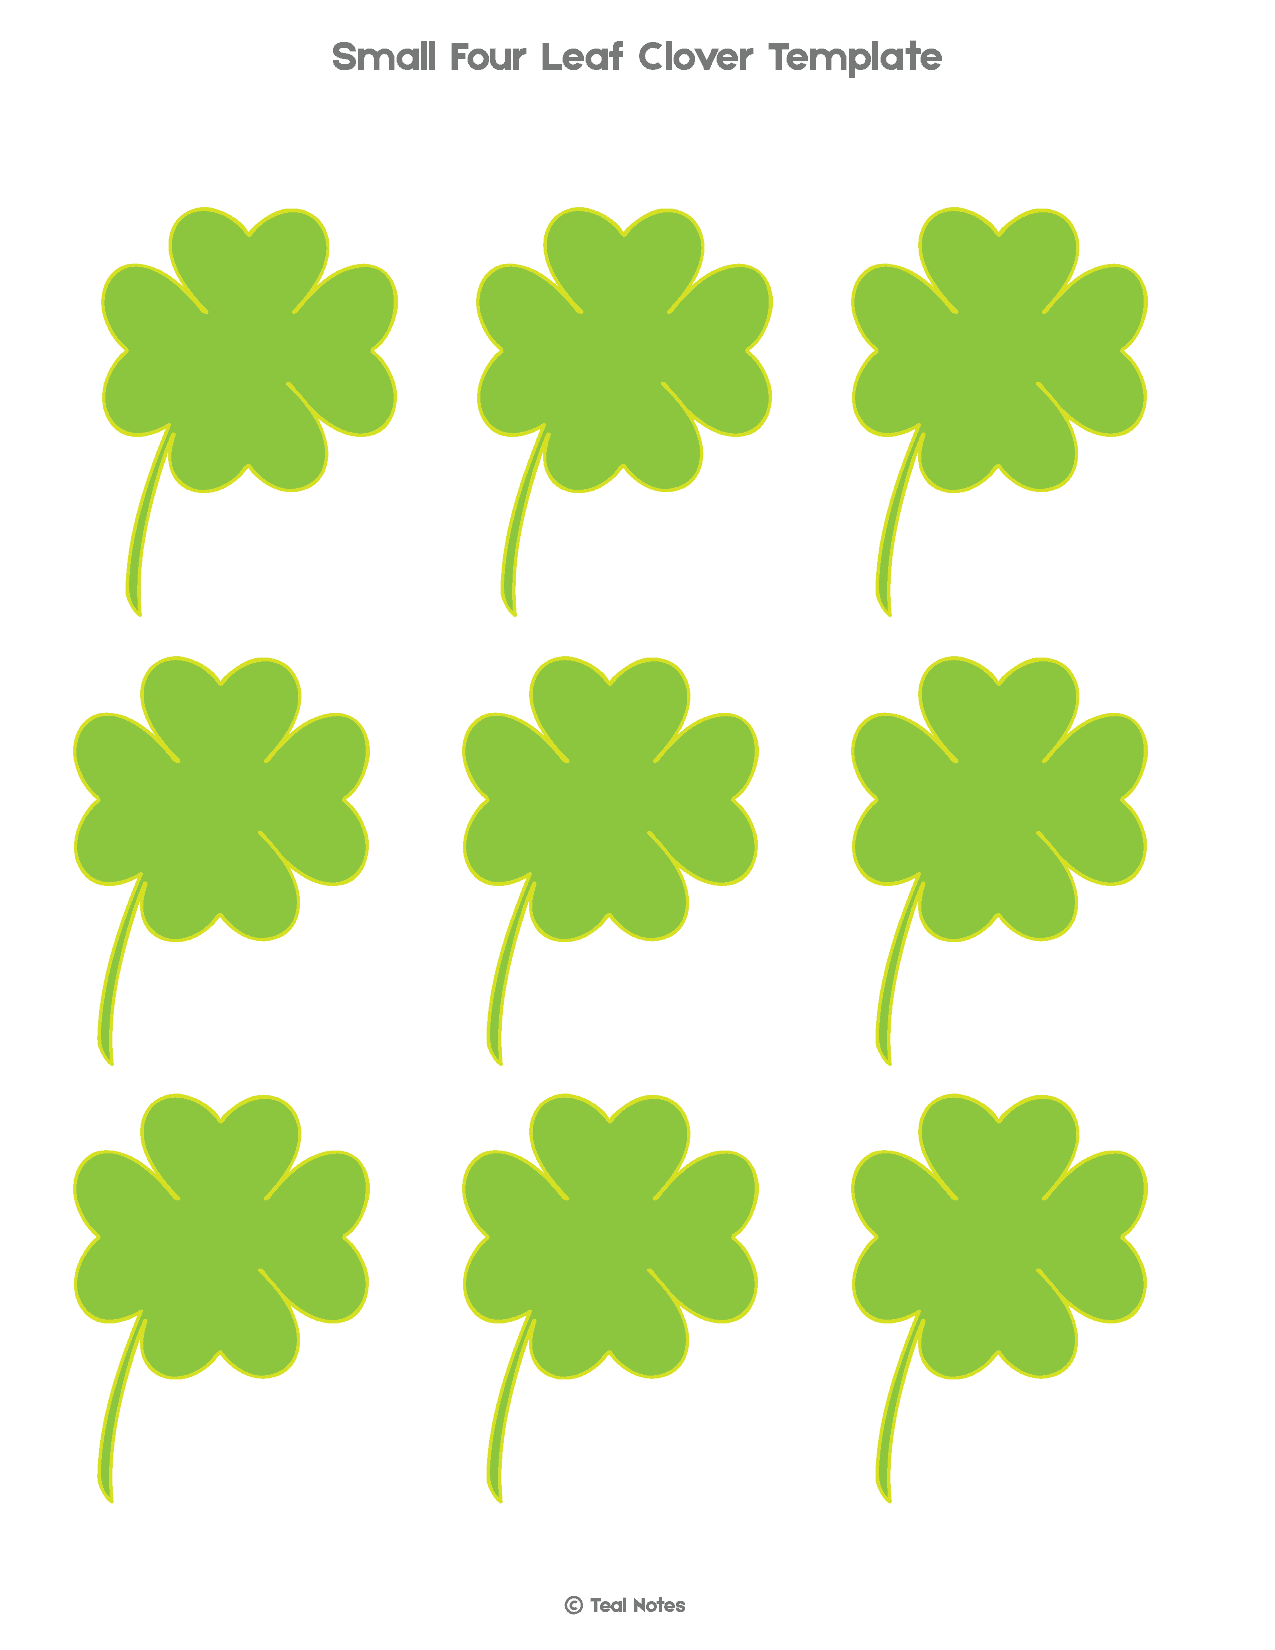 photo relating to 4 Leaf Clover Printable identify 4 Leaf Clover Template: No cost Shamrock Template Printable